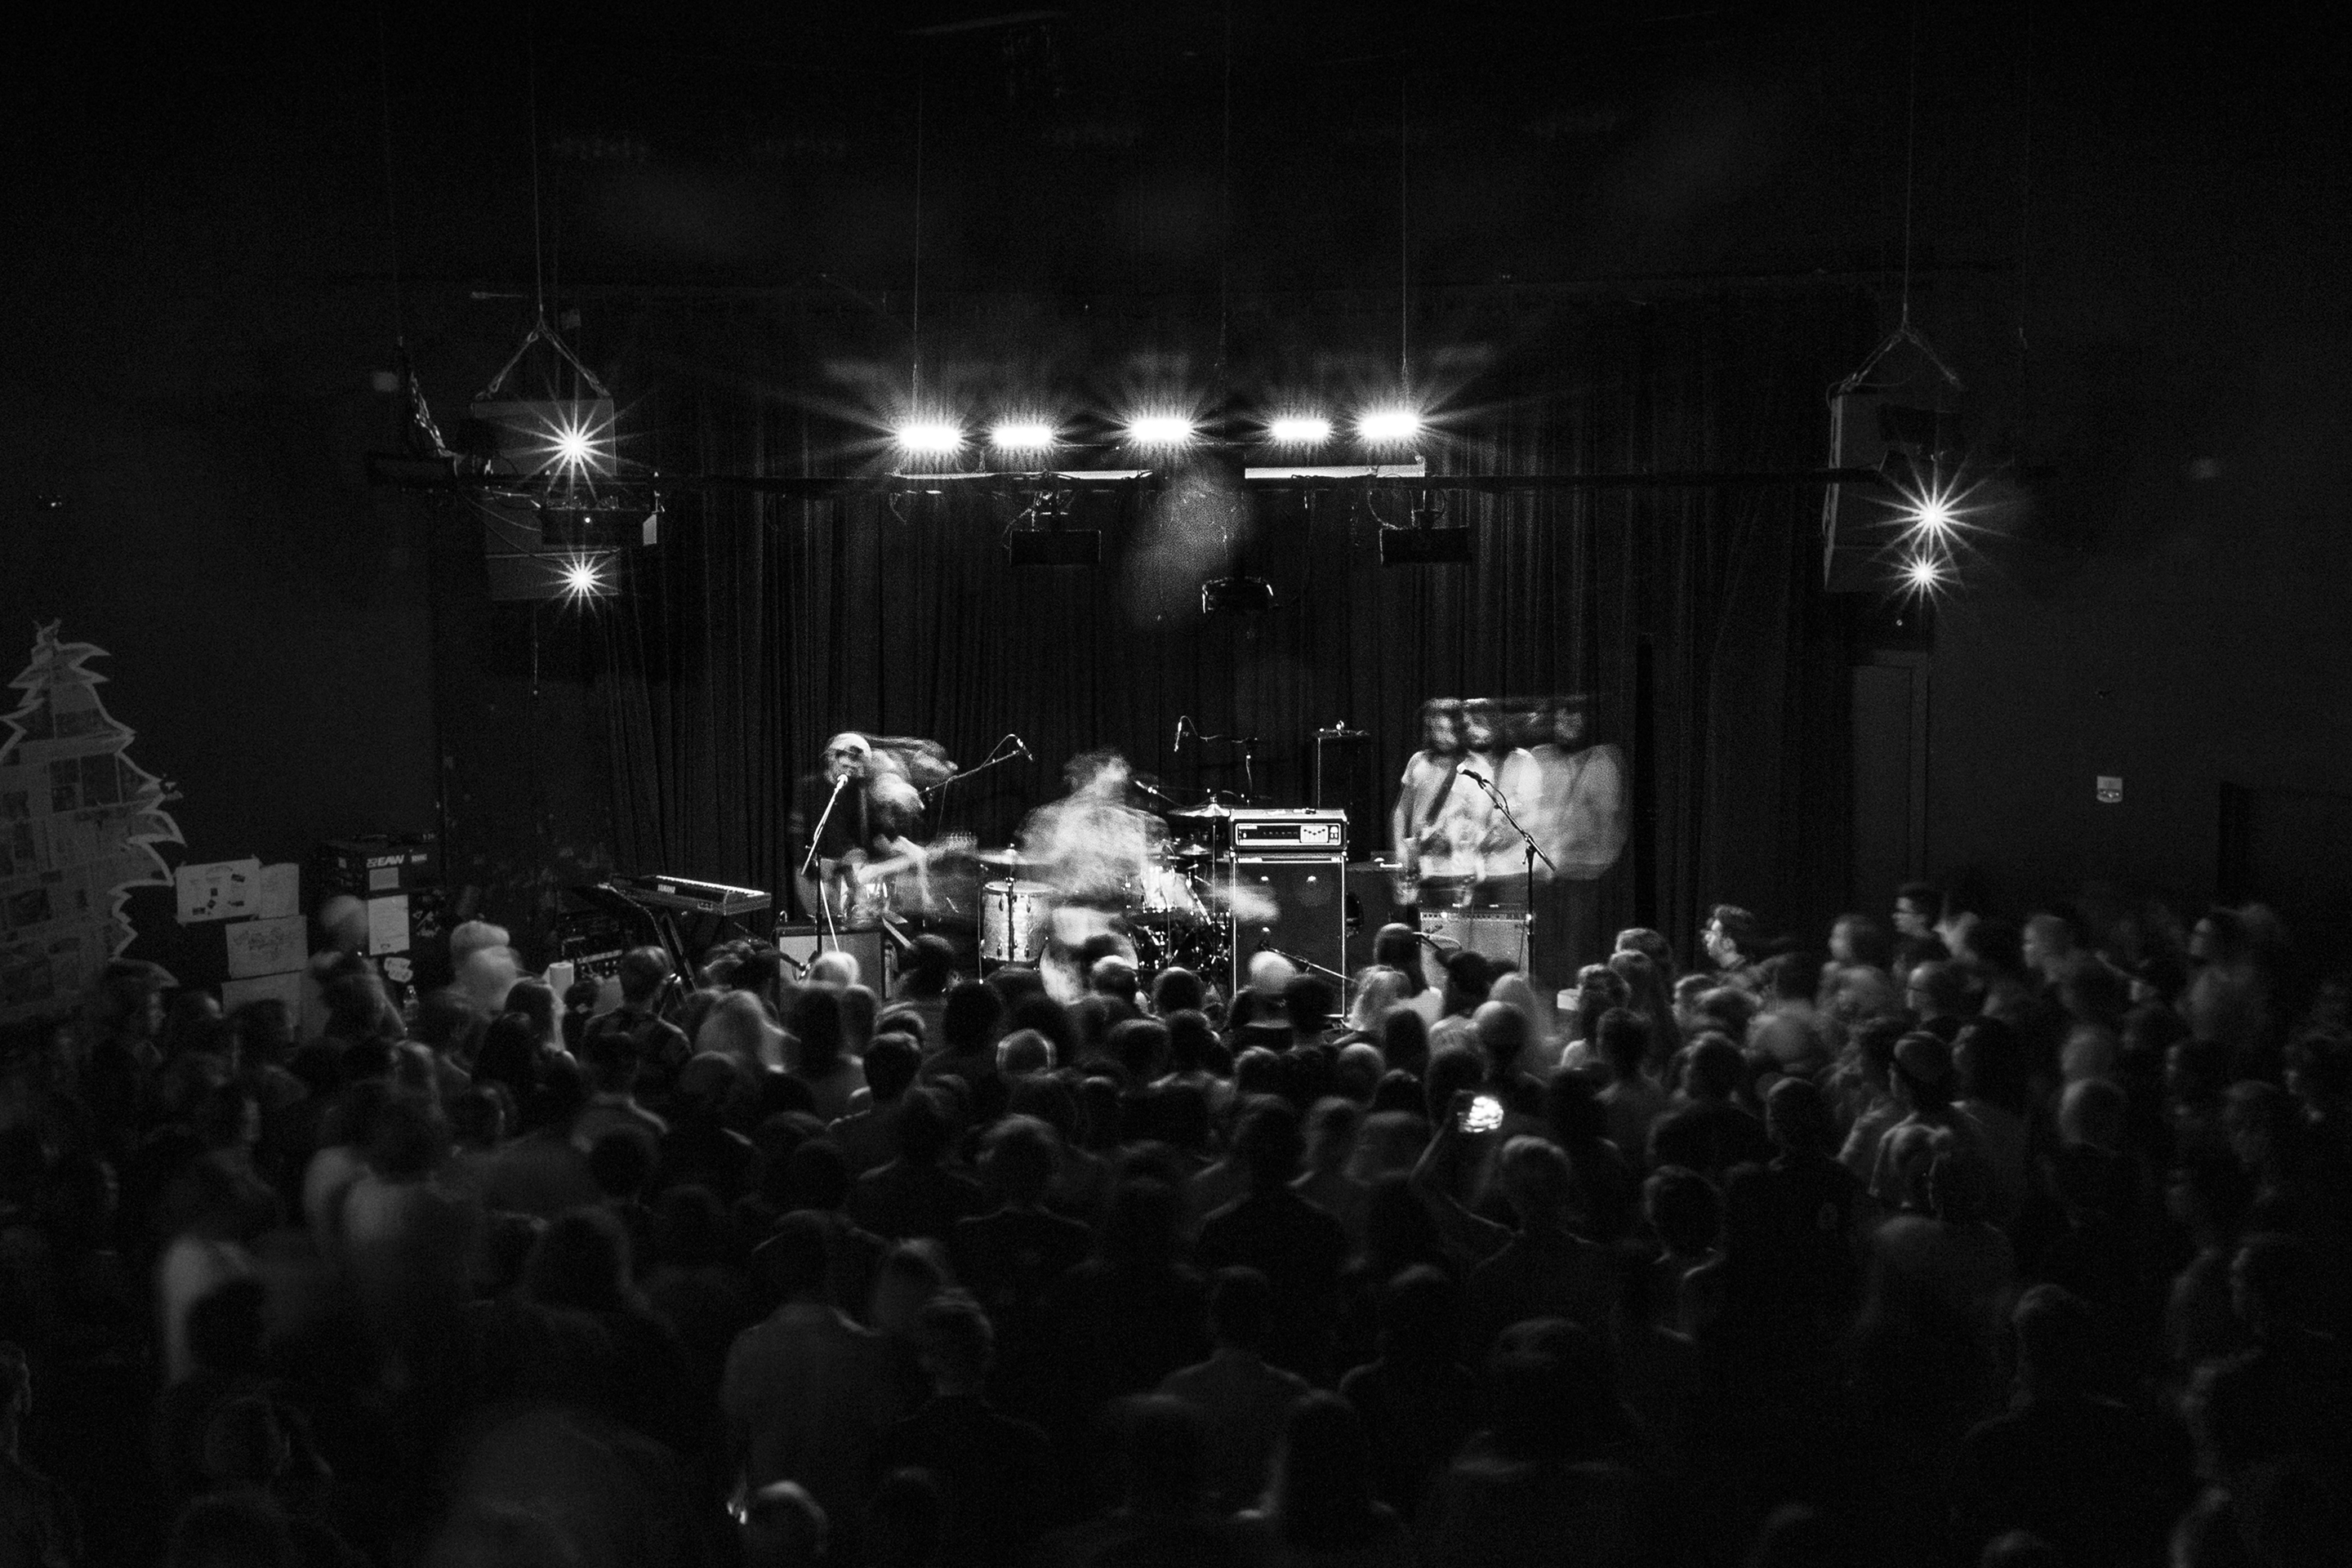 Where to find Seattle's best music